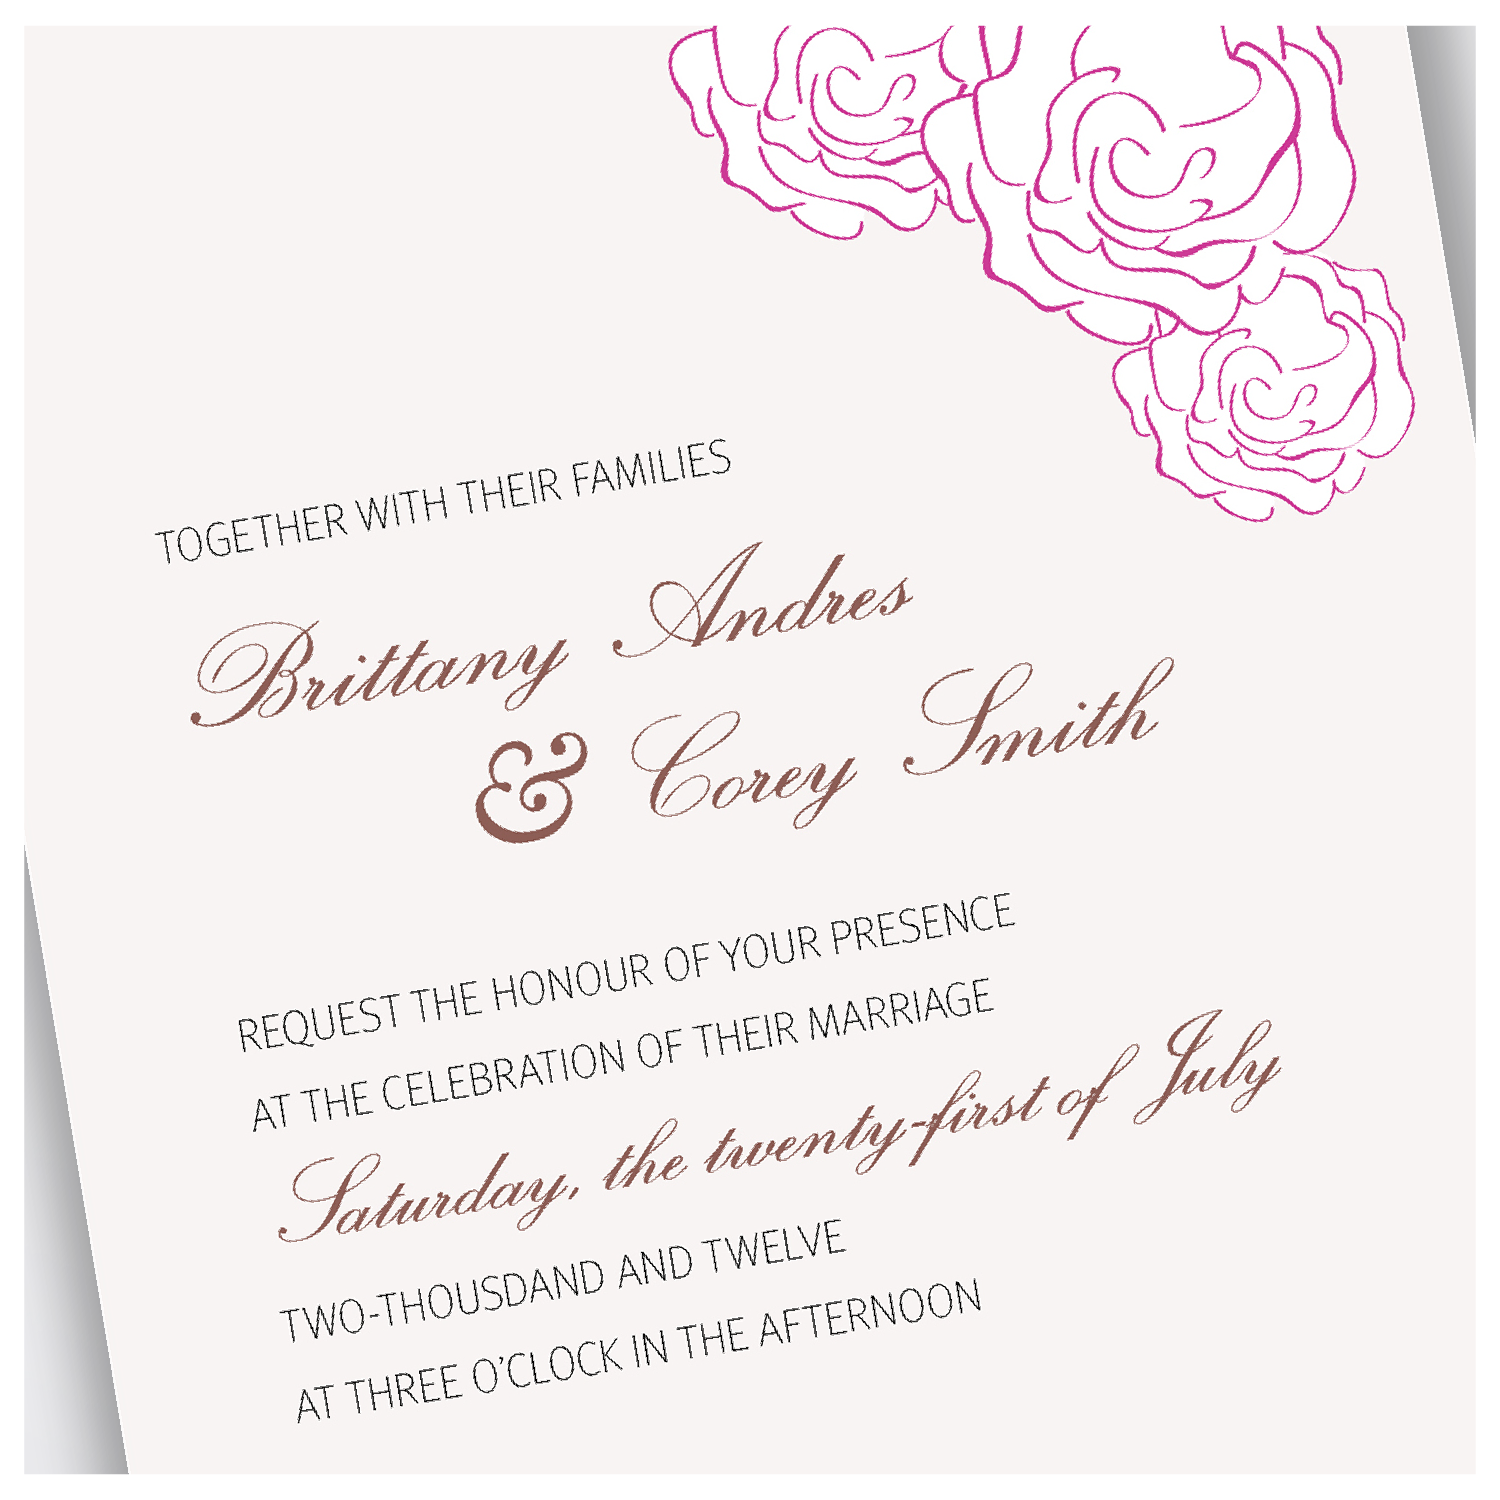 Invitations Brittany Corey-02.png